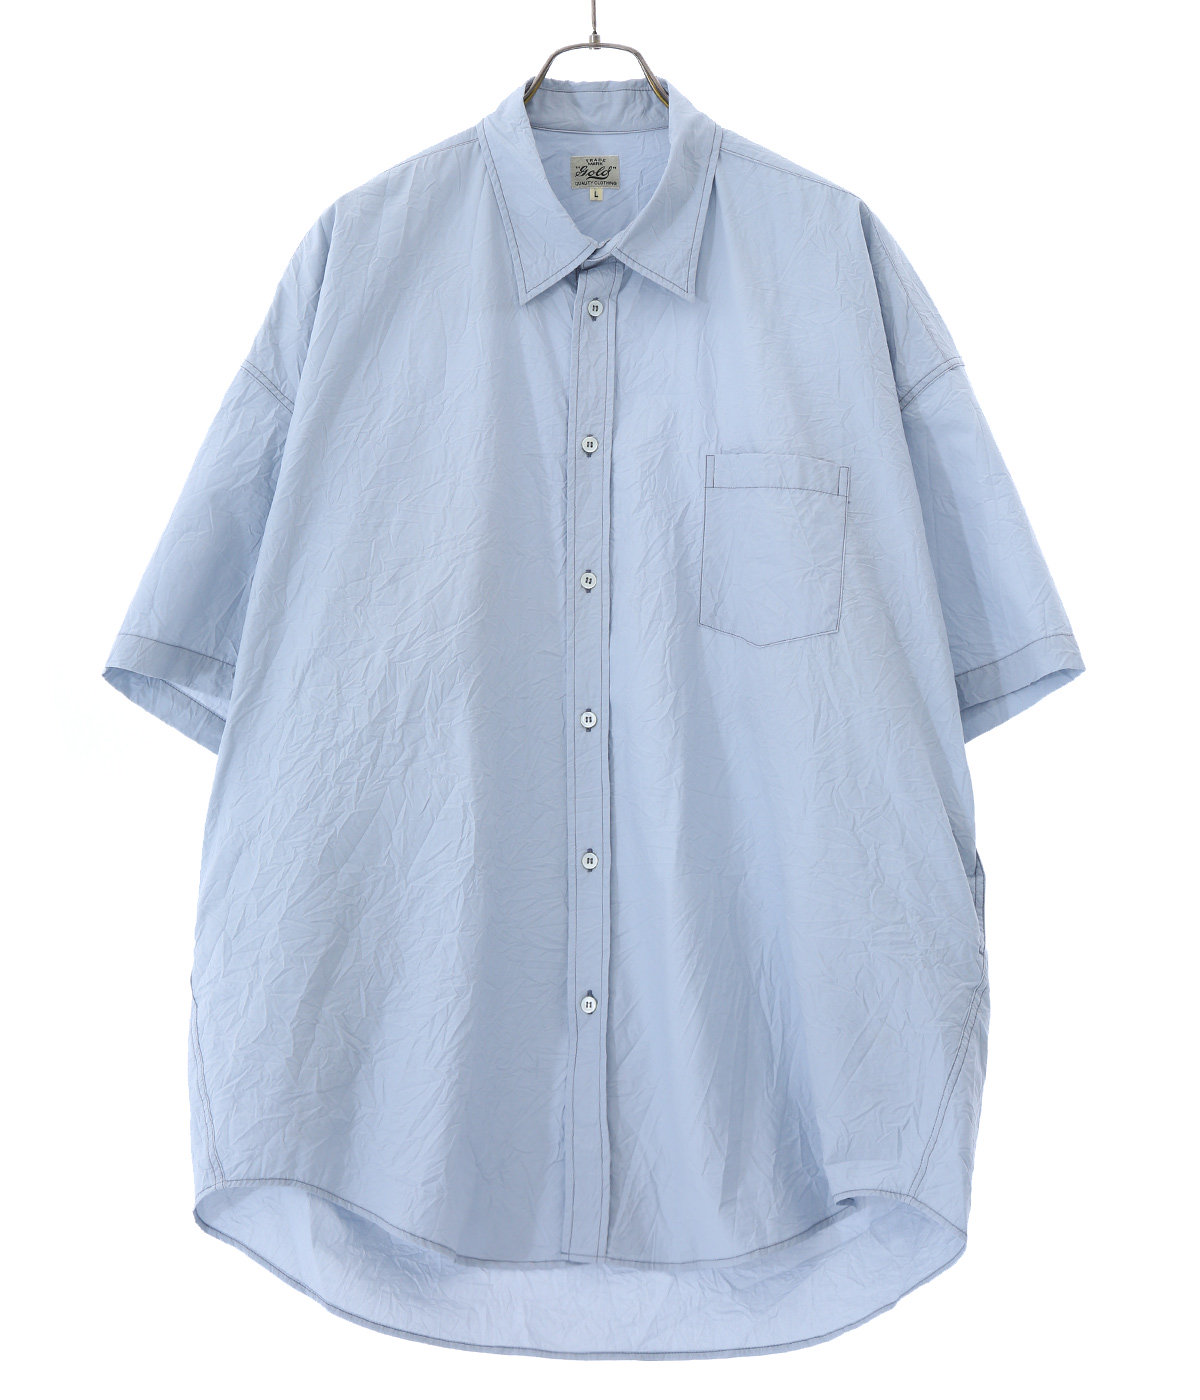 【予約】WASHER BROAD BALLOON SHIRT